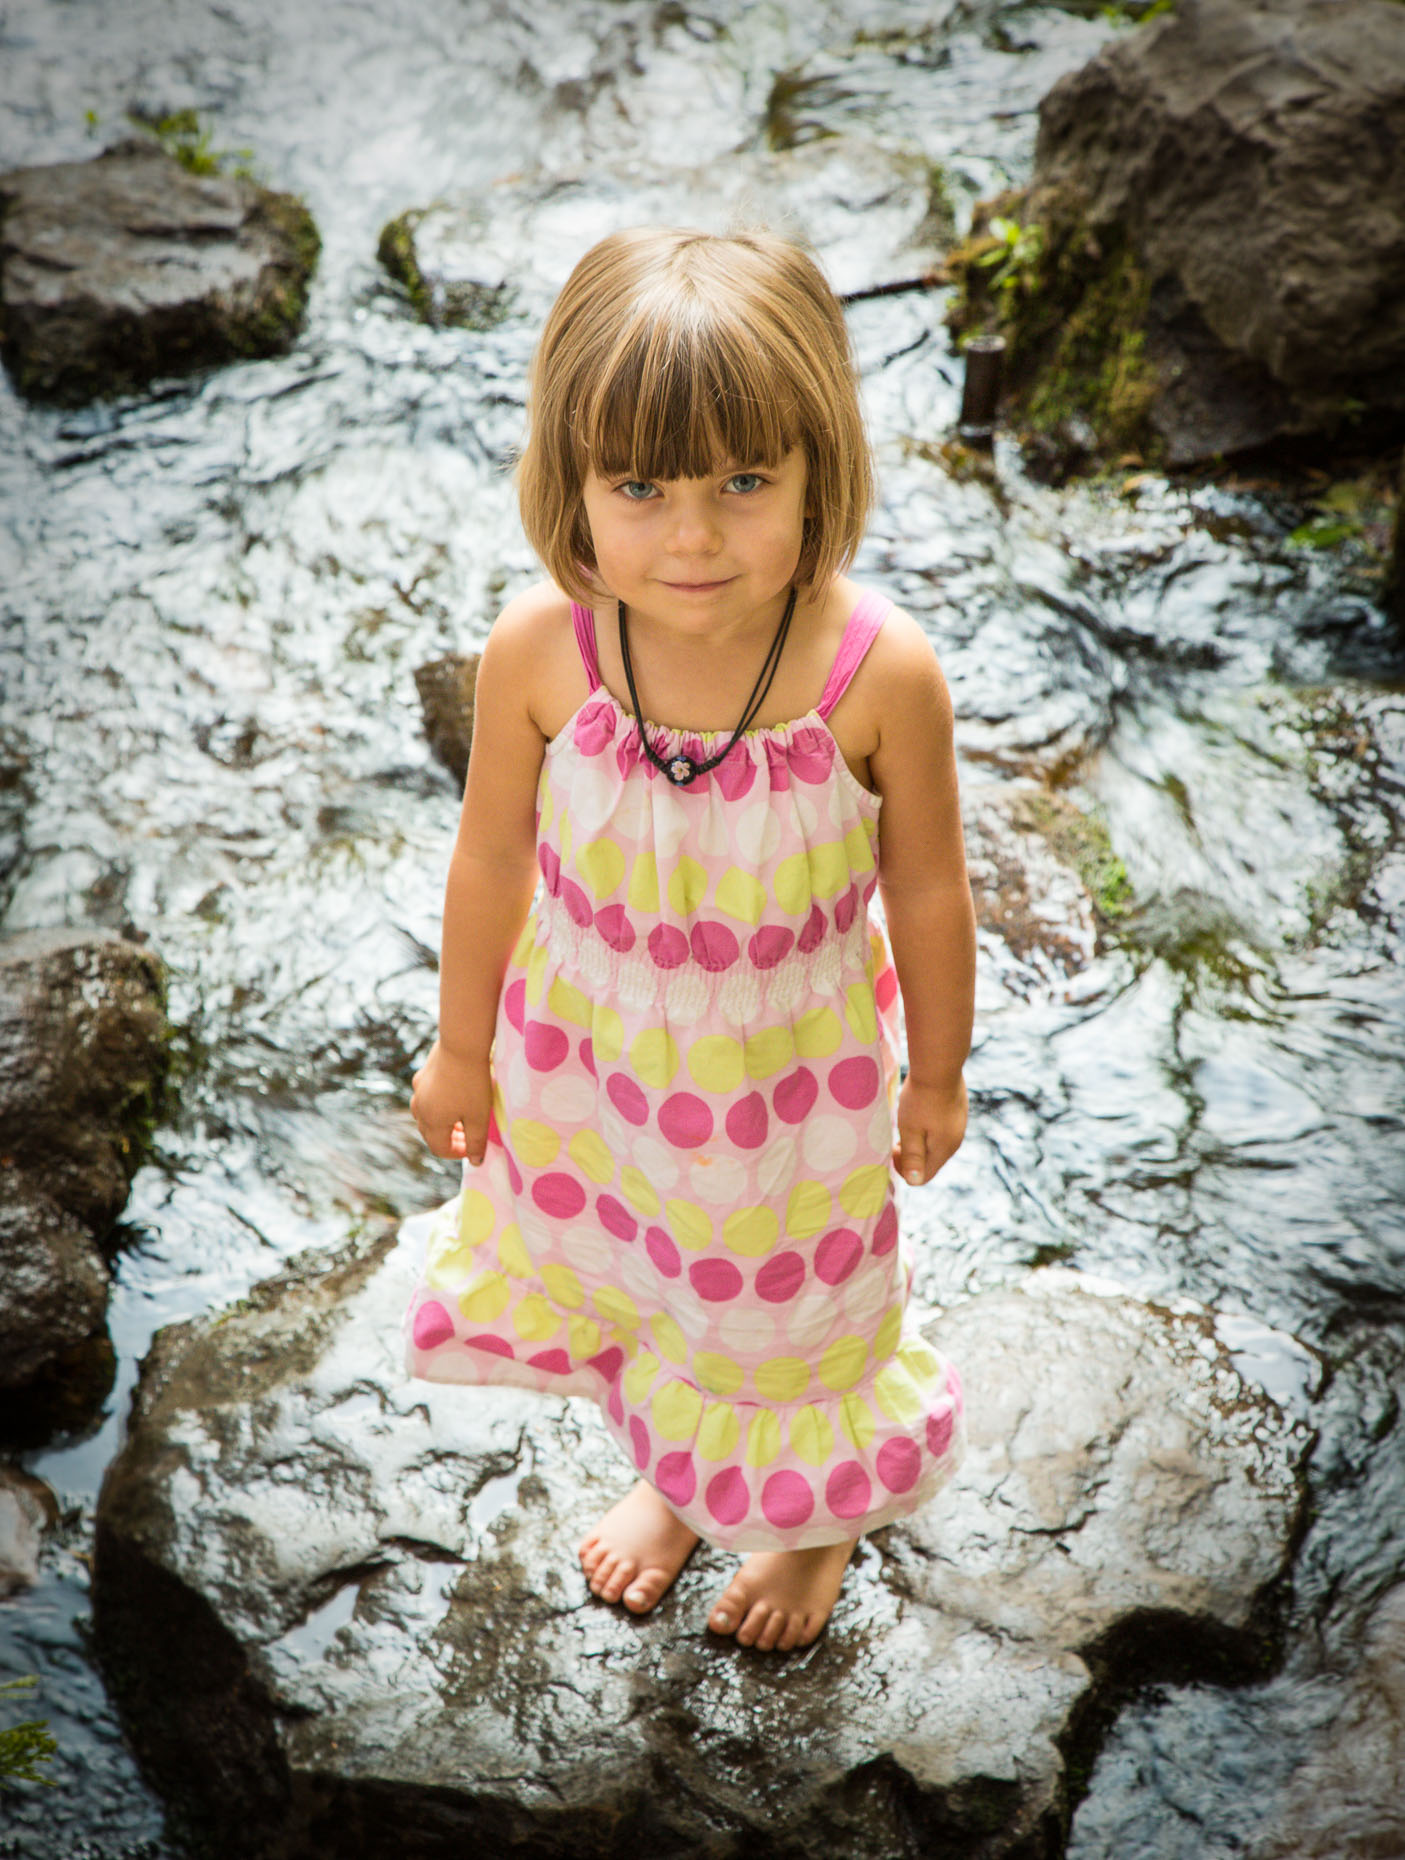 Portrait of little girl in colorful dress standing on rocks in creek in Mt. Shasta City, California by David Zaitz